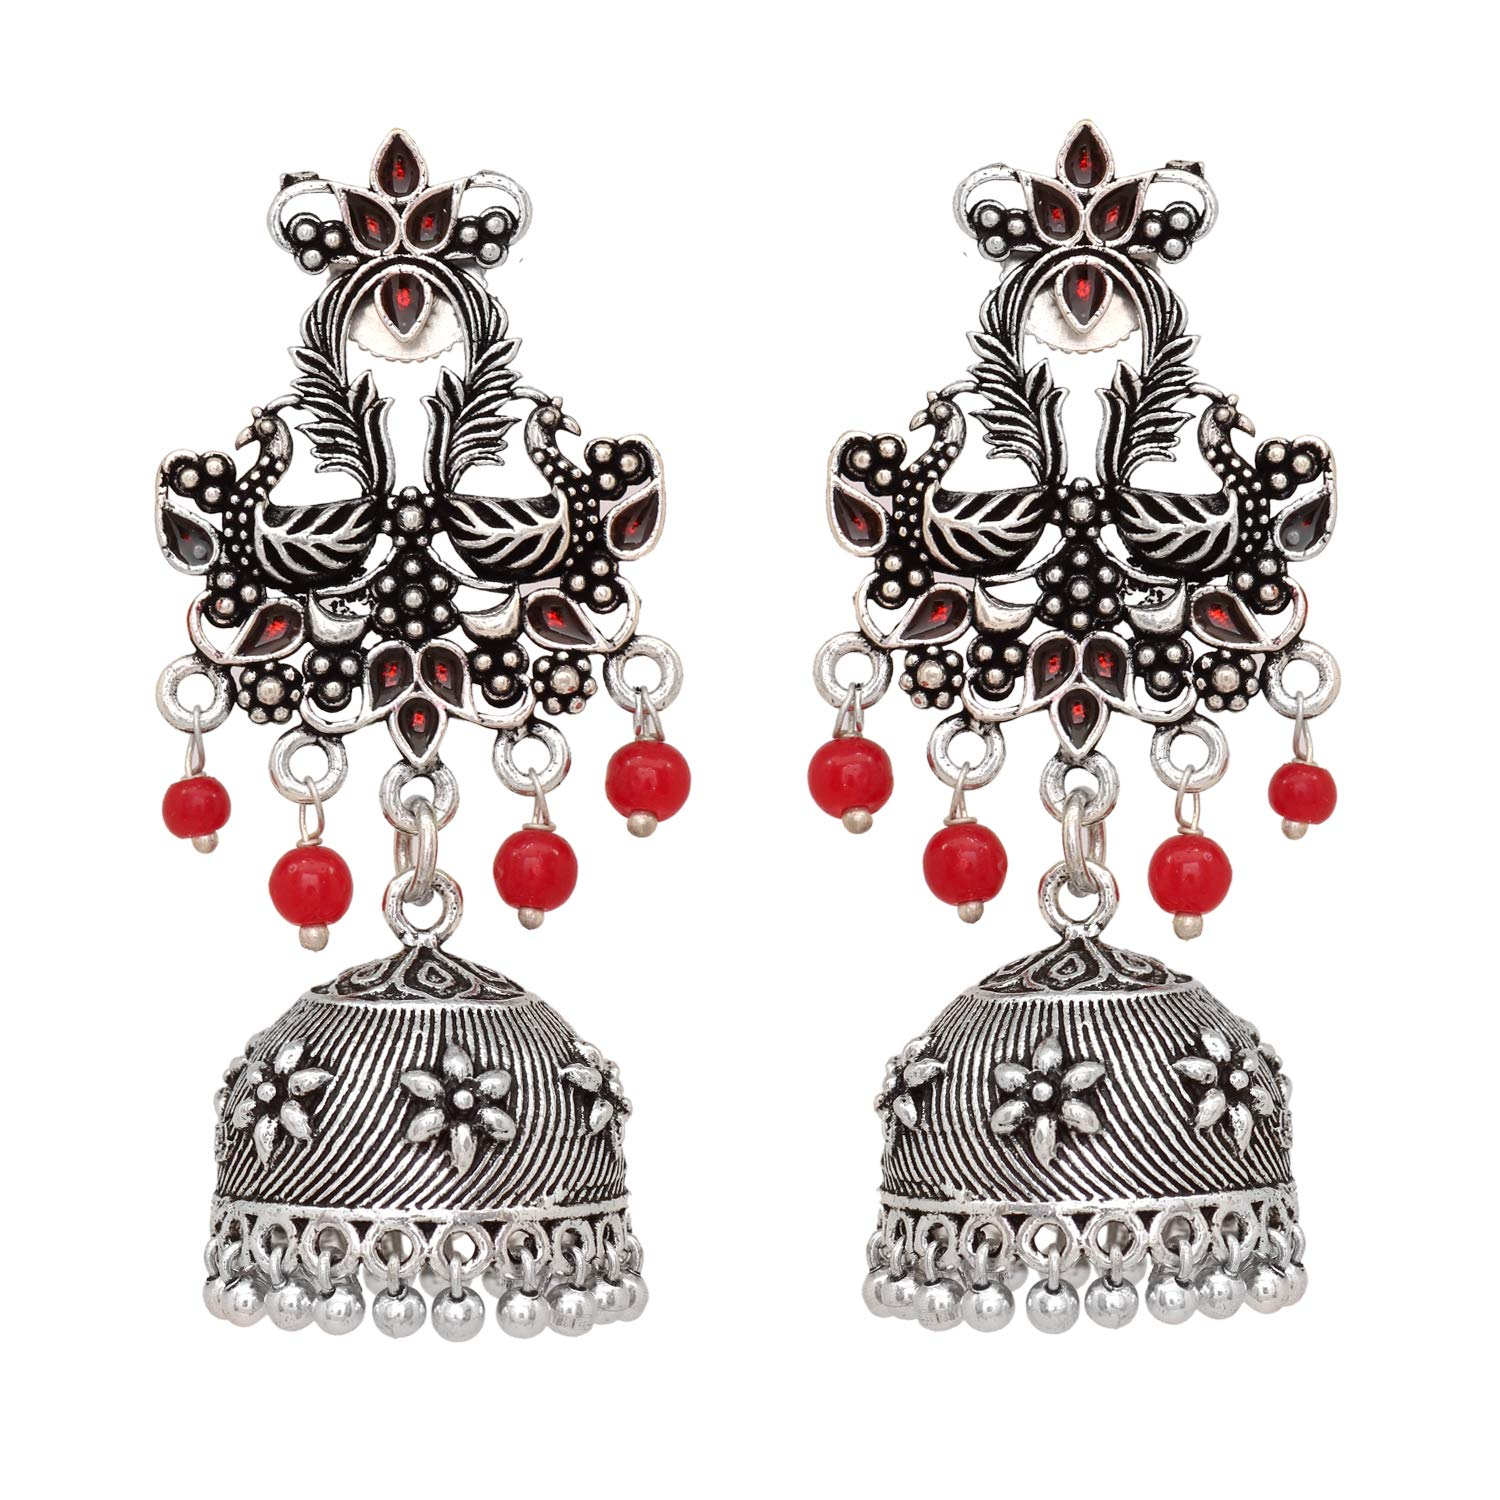 V L IMPEX Oxidized Silver With Color Beads Meena Work Women Jhumka Jhumki Earrings Price in India